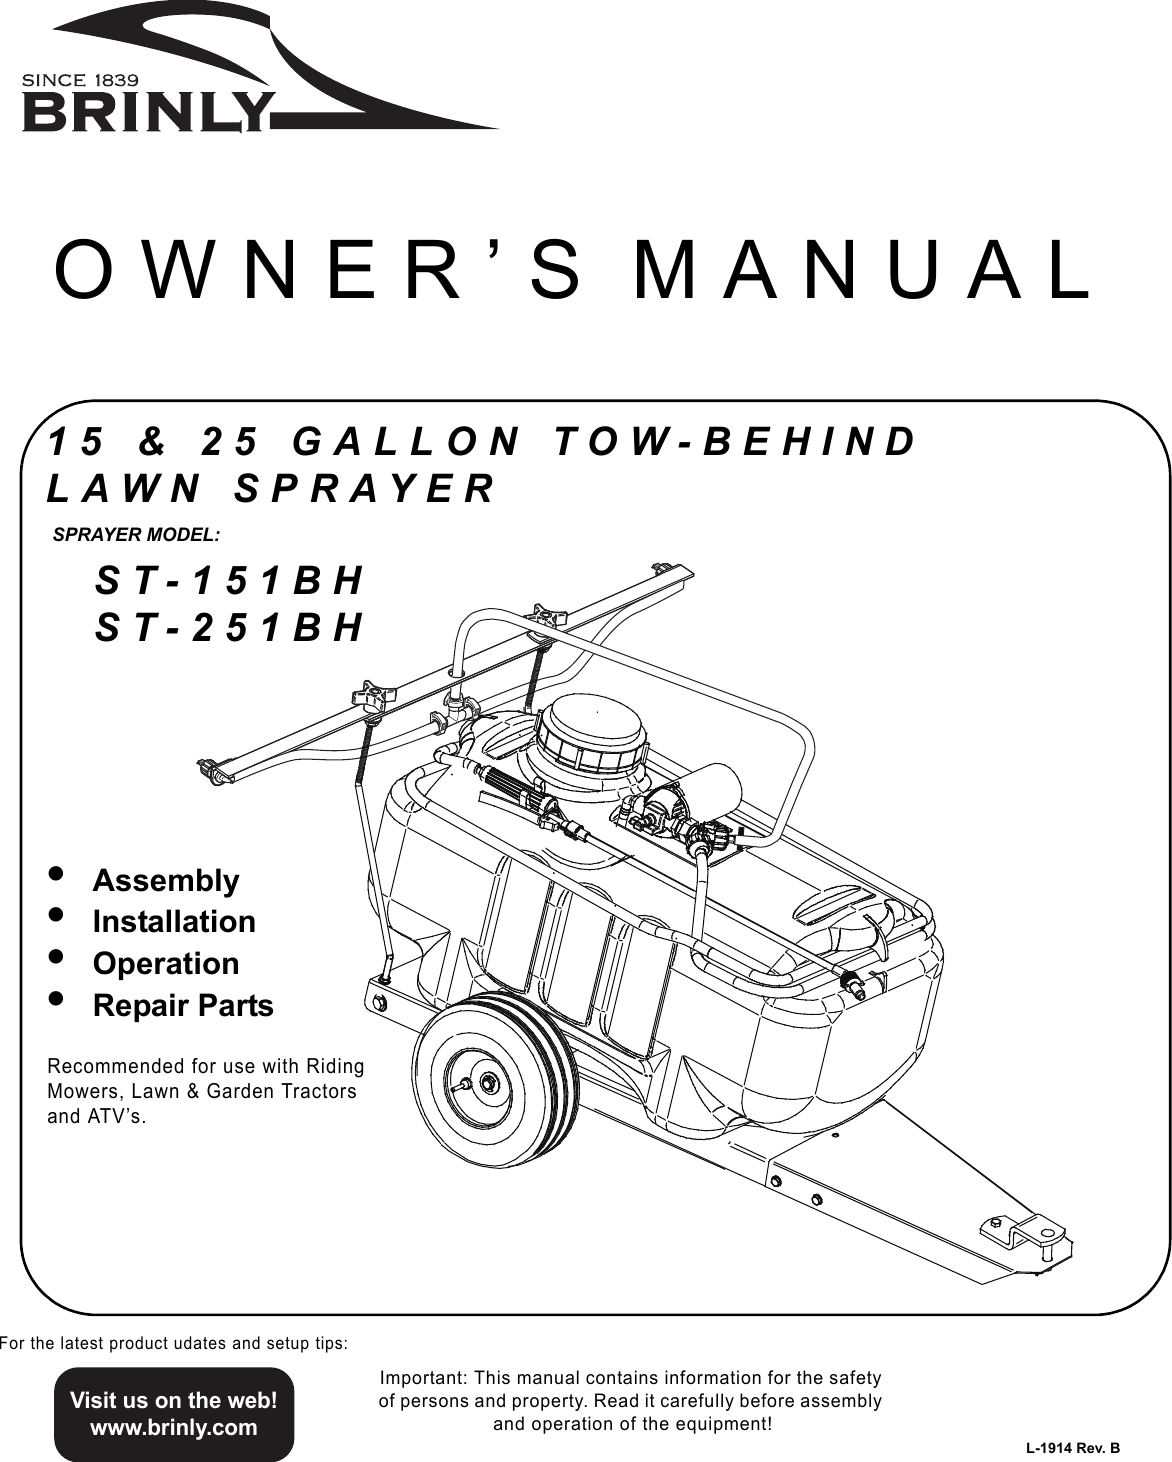 Brinly Hardy 15 And 25 Gallon Tow Behind Lawn Sprayer St